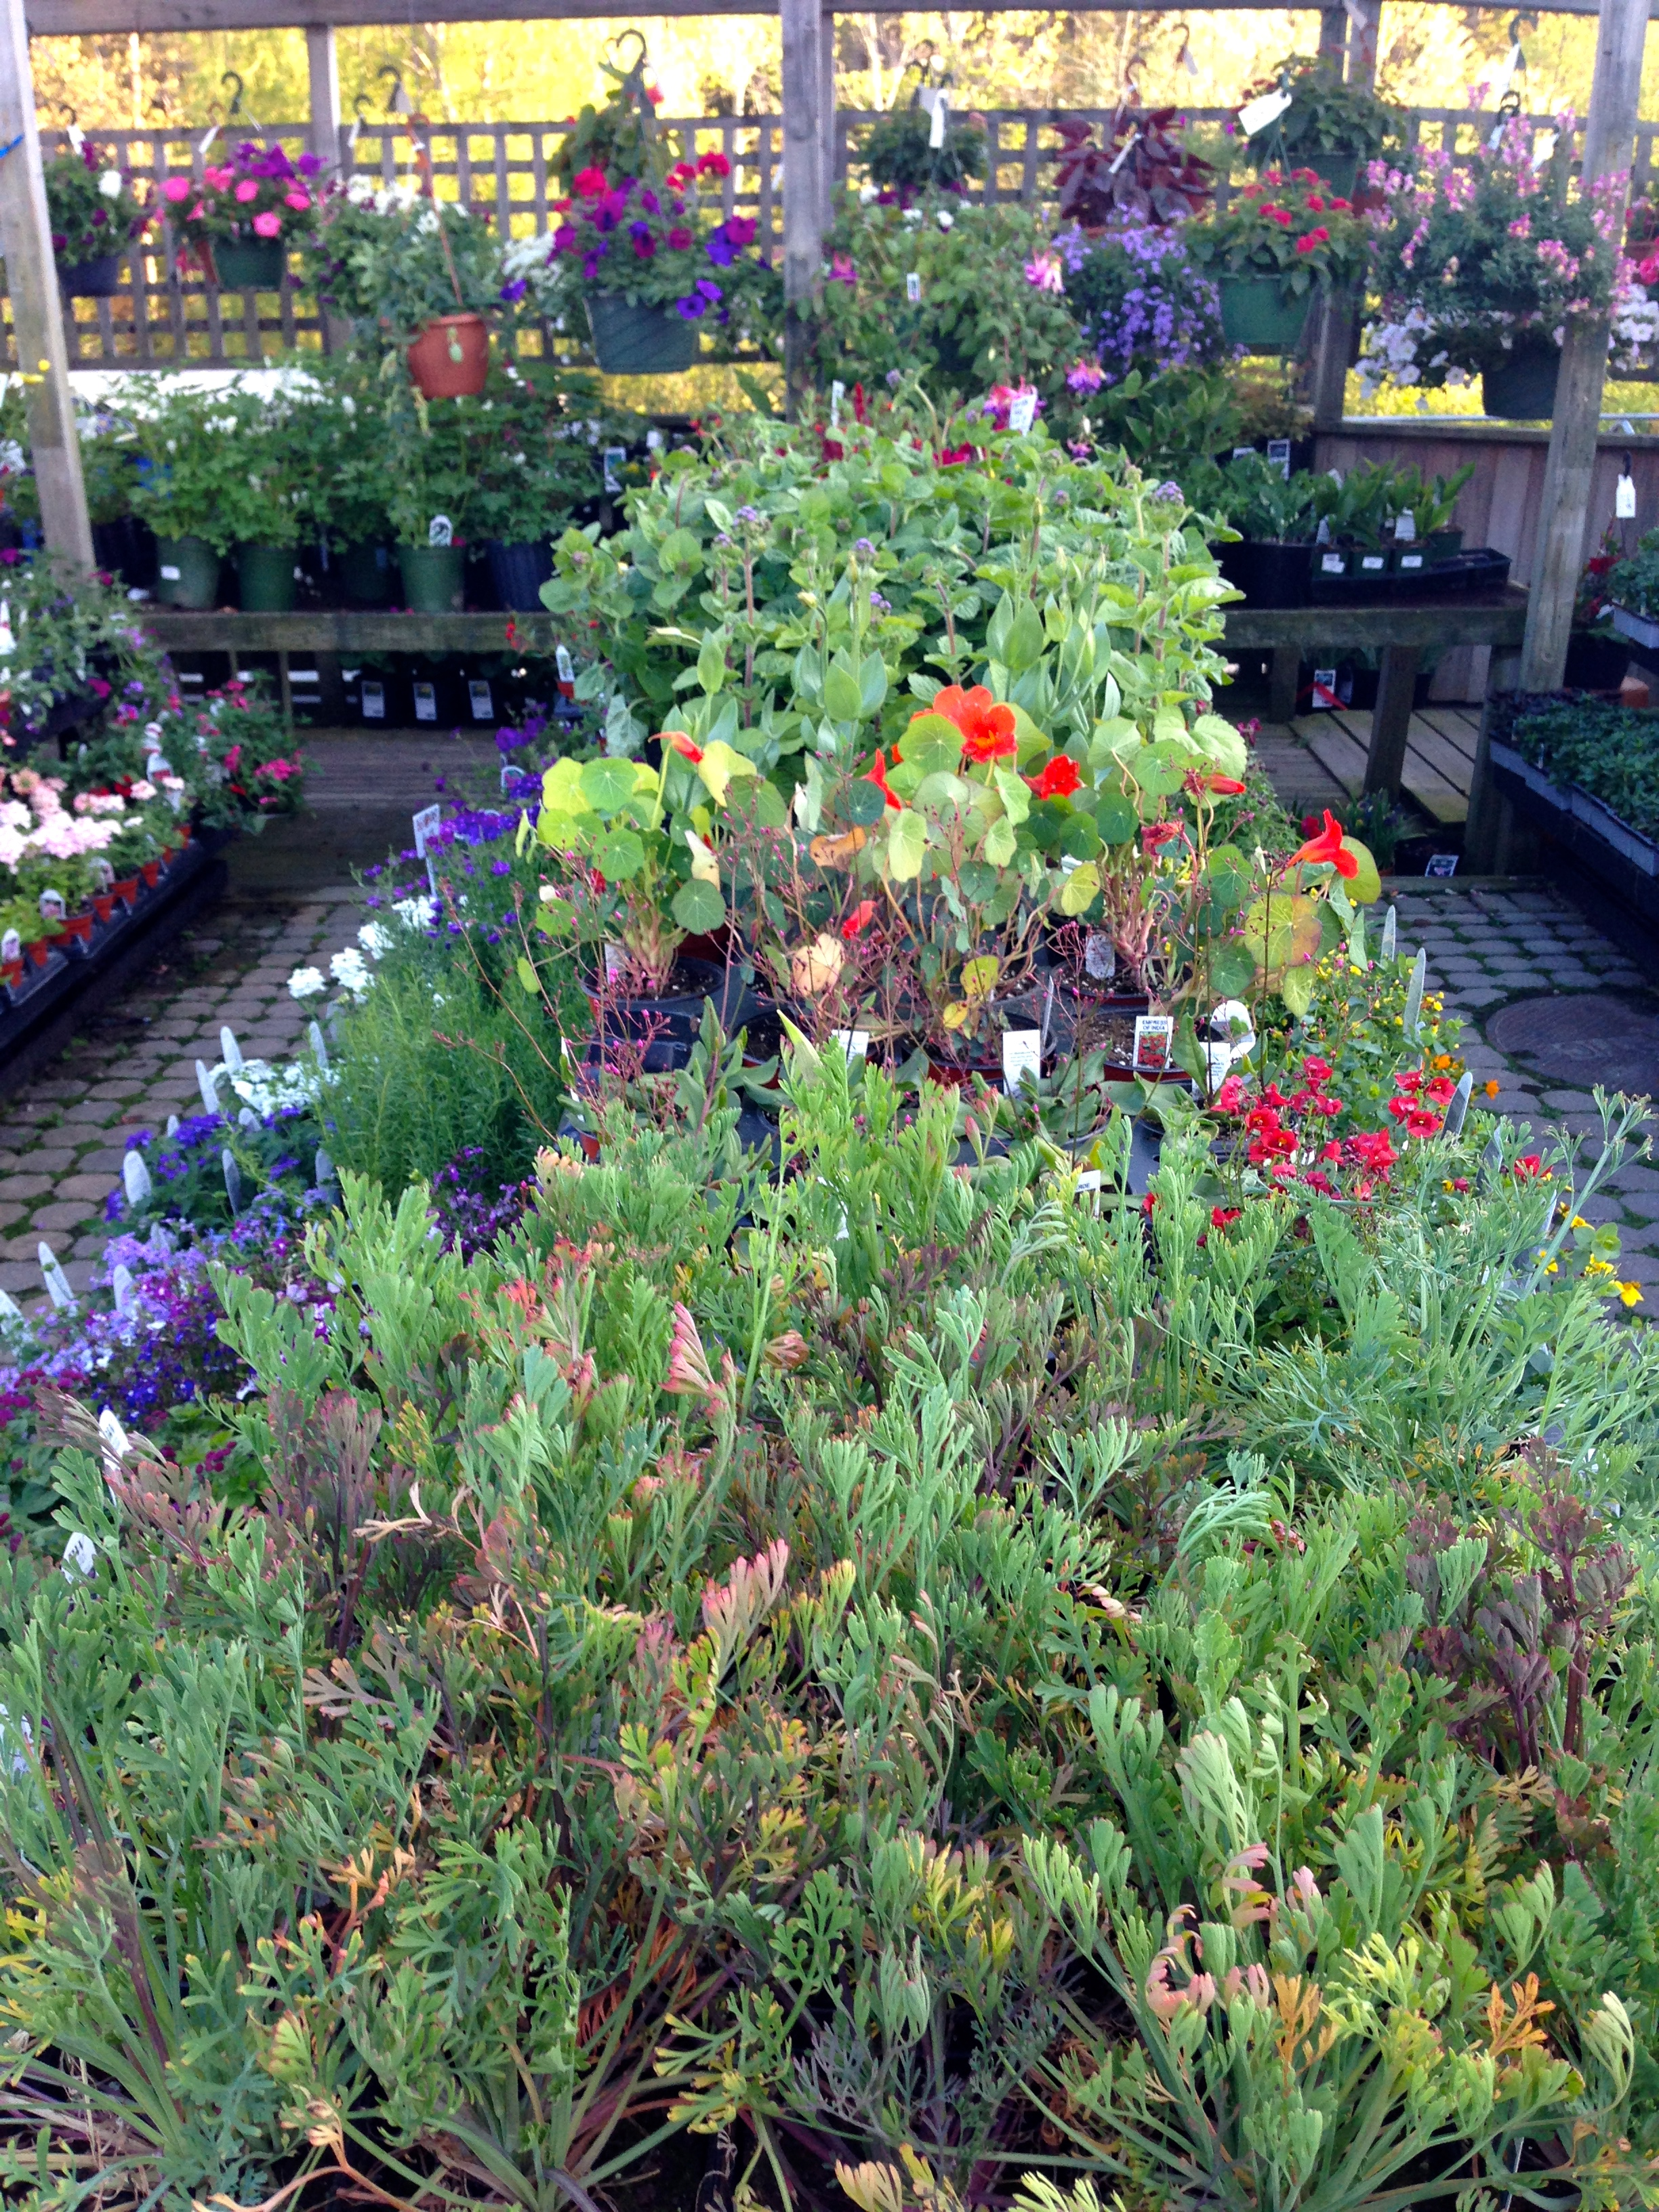 Hard-to-find annuals and old-time favorites cover our tables from top to bottom. Many of our annuals and perennials are hand-selected by our staff, and come straight from the farm to our garden center.